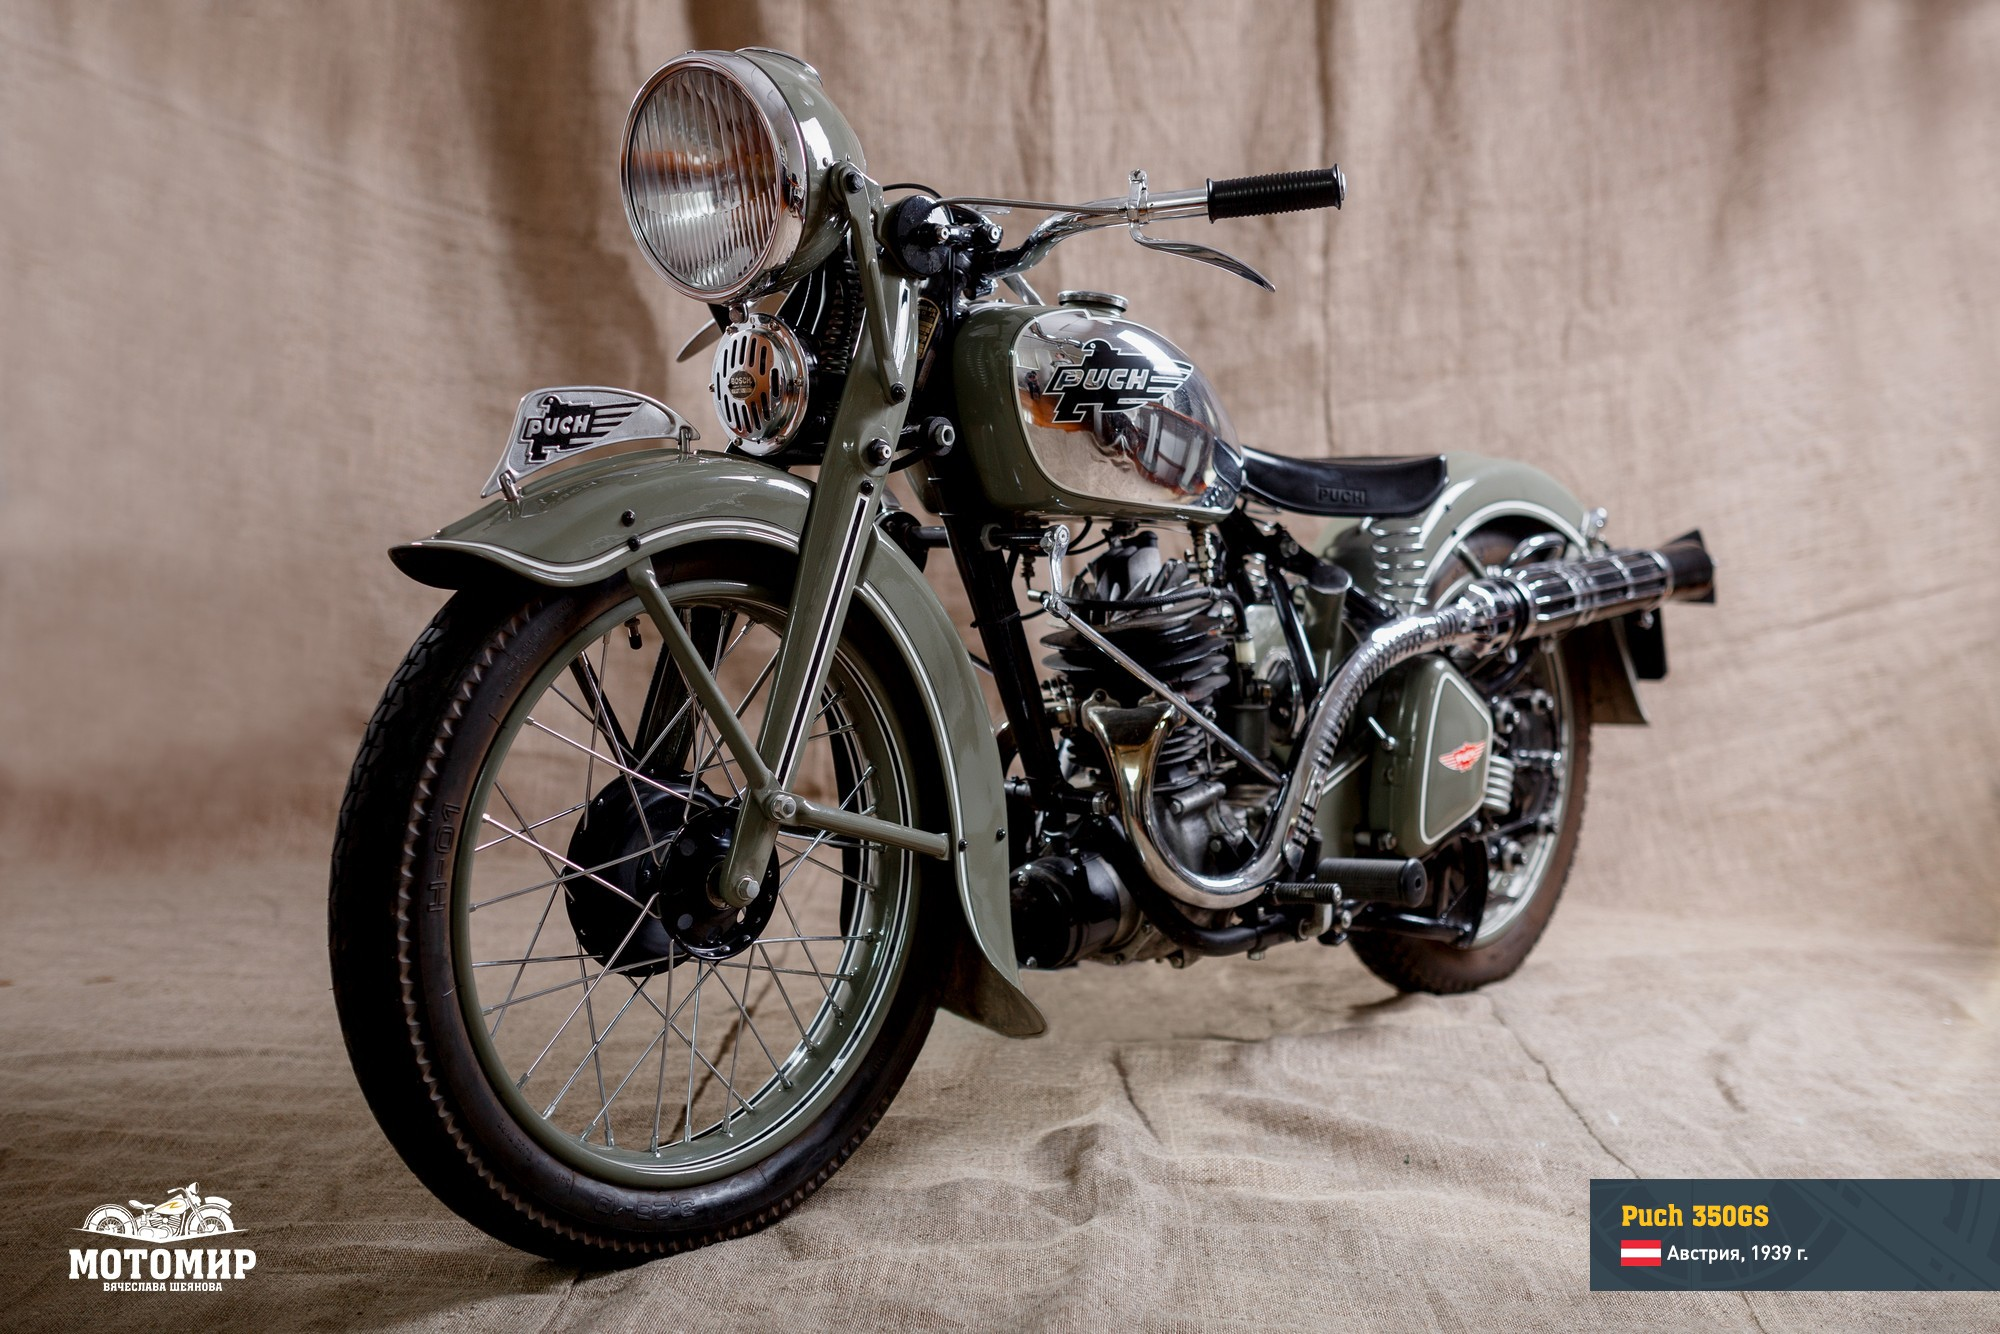 puch-350gs-201601-web-06